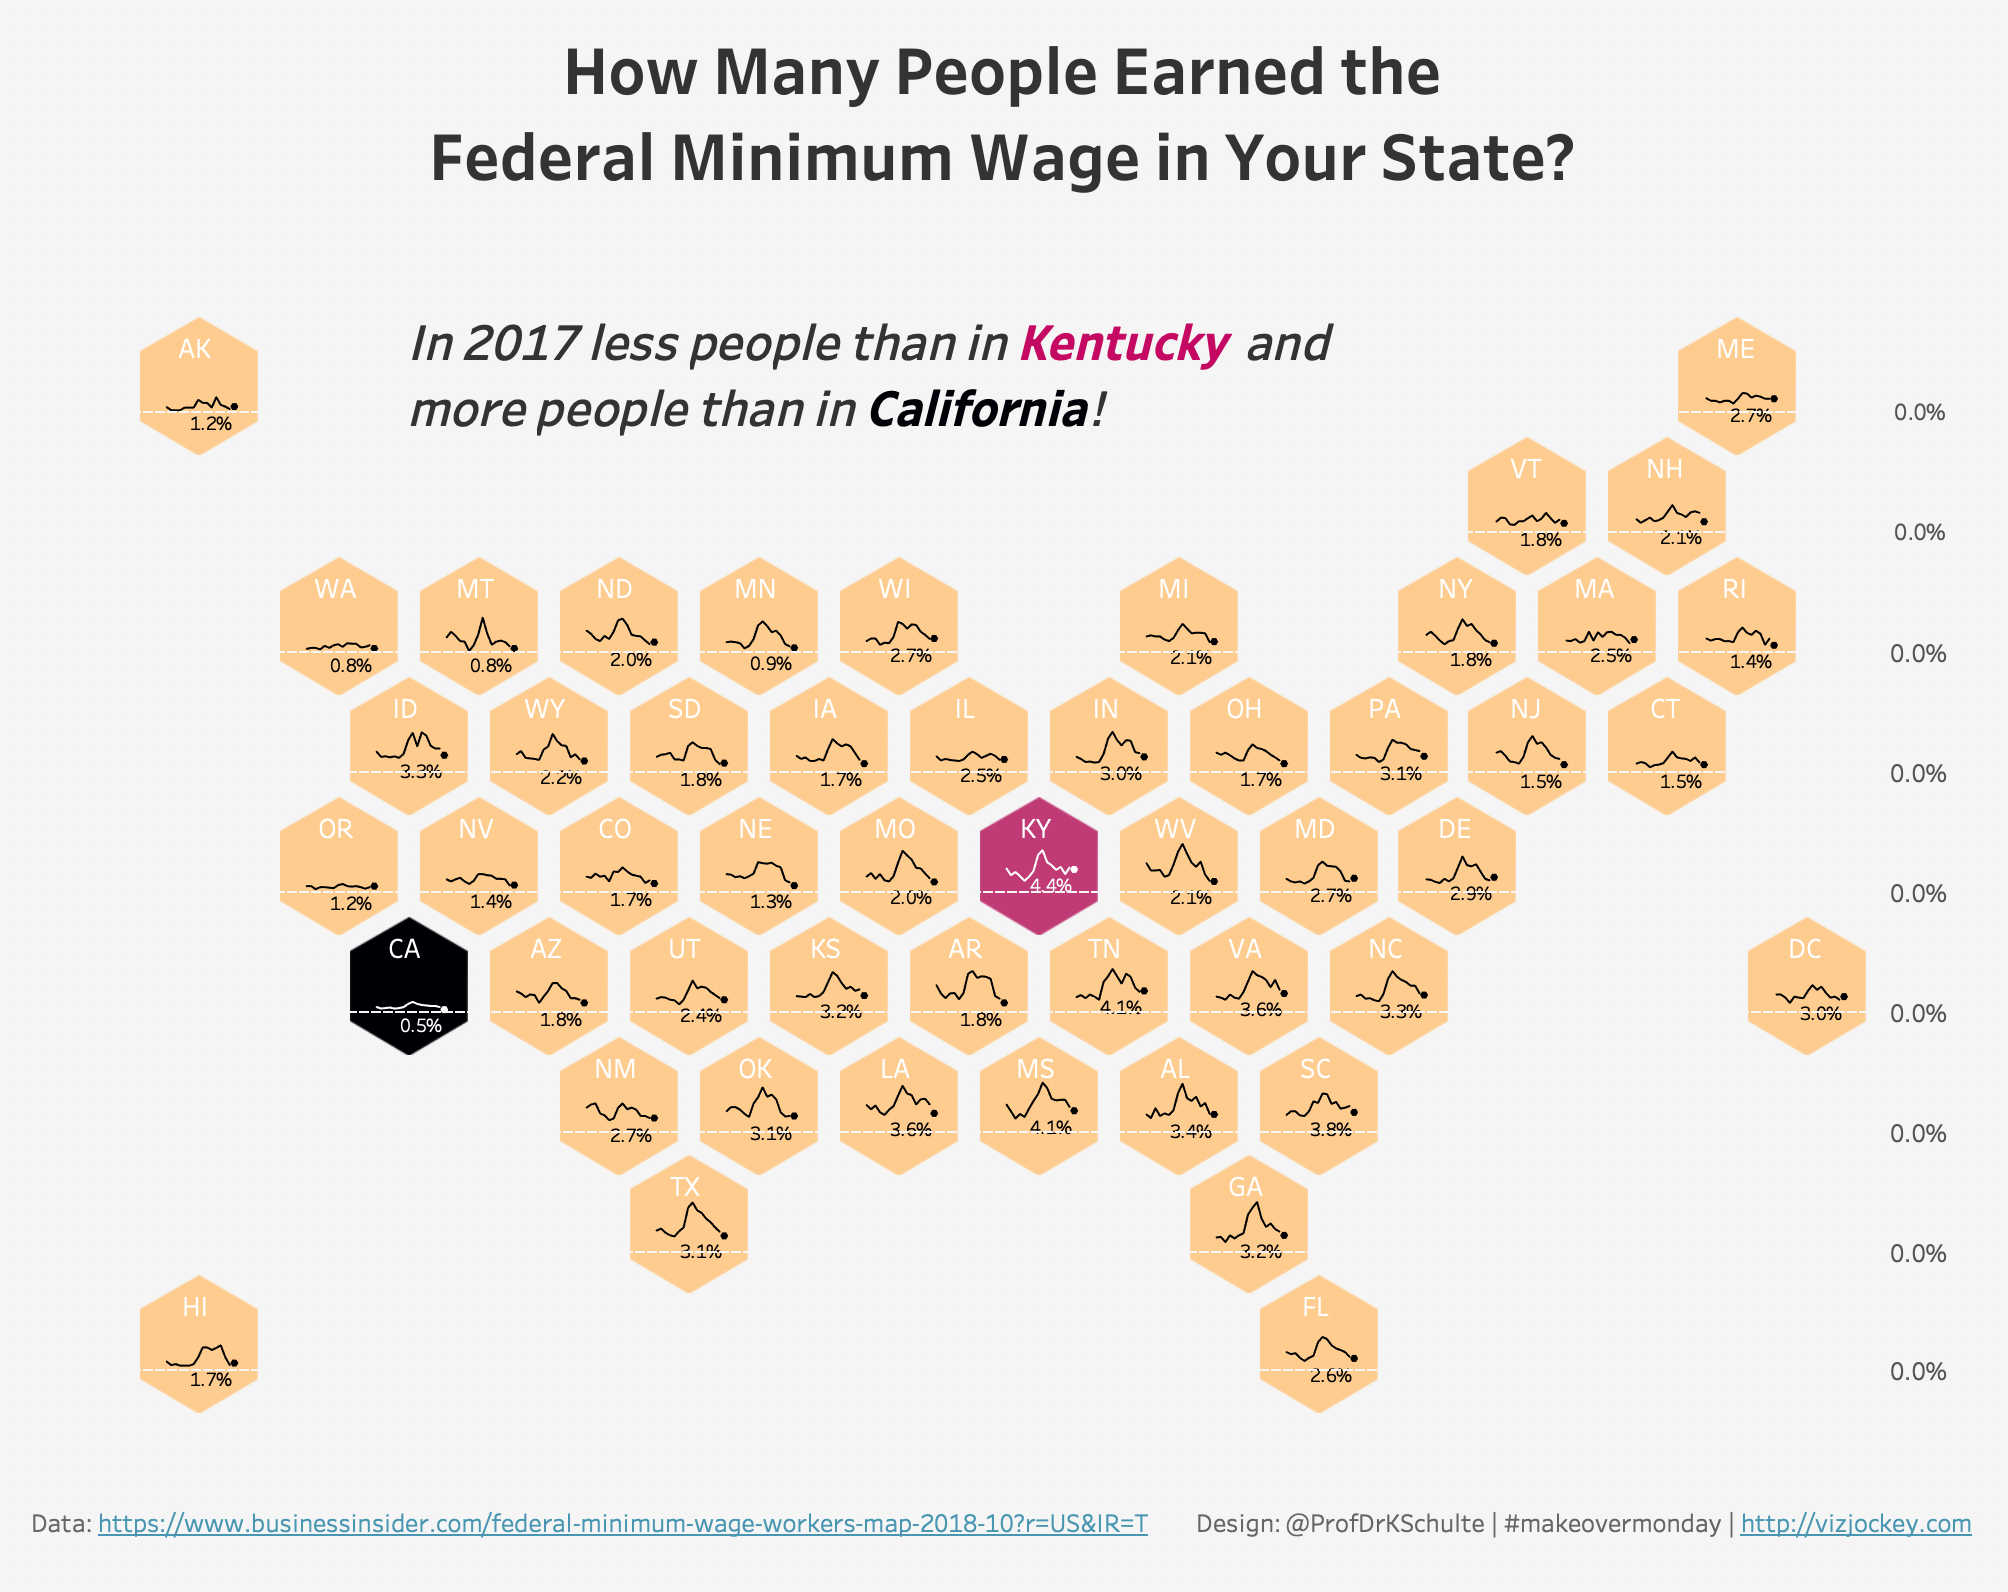 Tableau - How Many People Earned the Federal Minimum Wage in Your State? [from PUBLIC.TABLEAU.COM (DEFAULT)] 2019-01-14 19-44-07.jpg